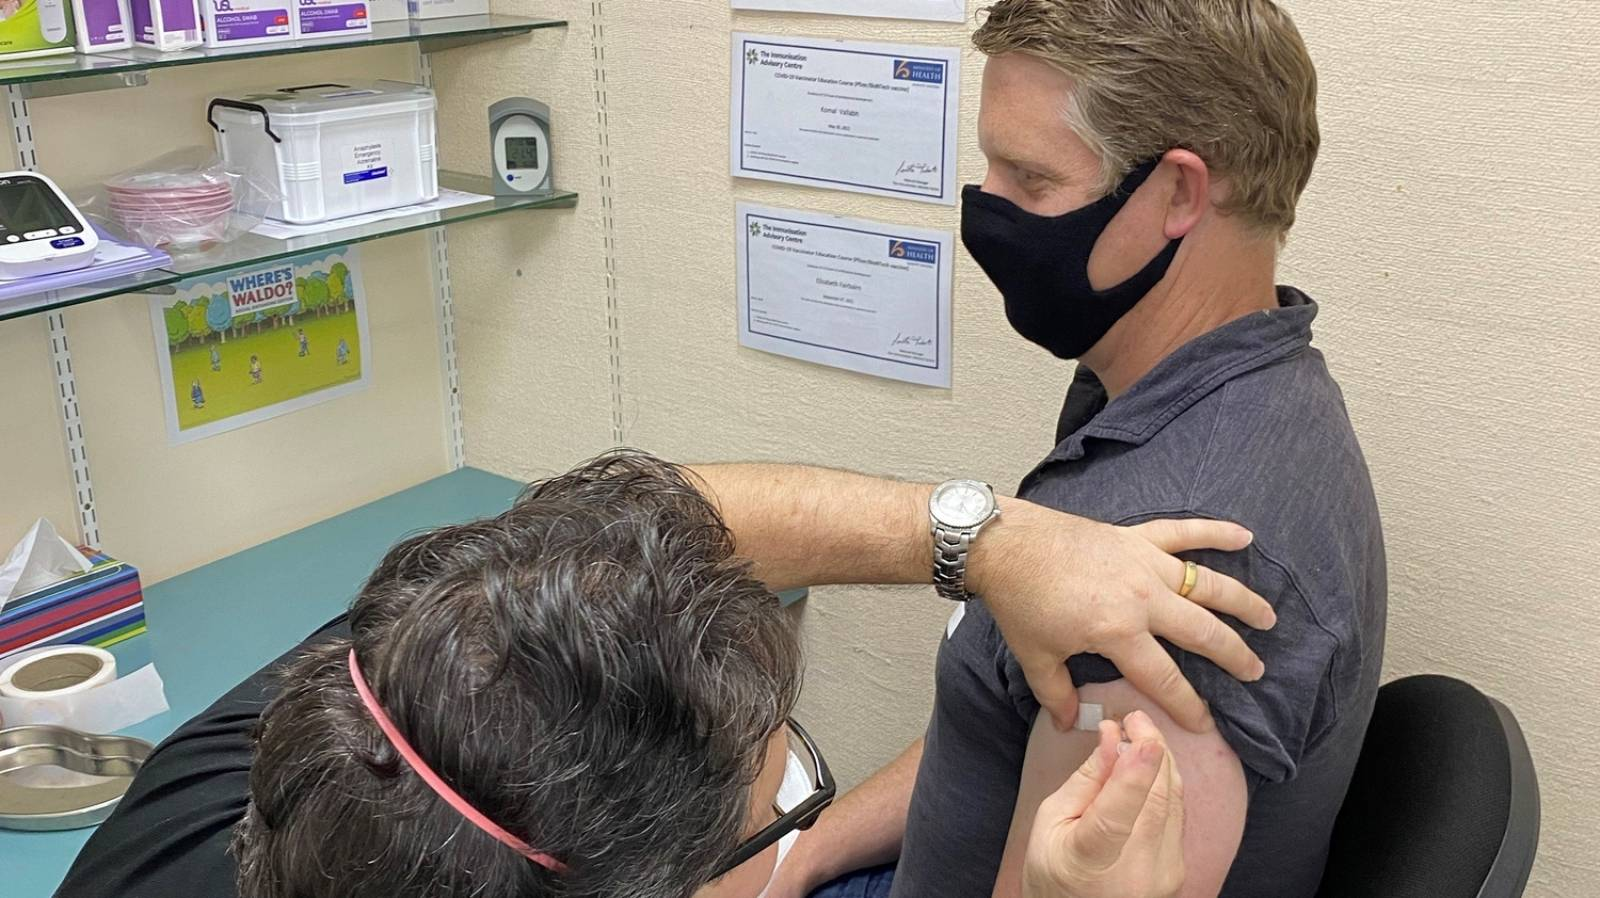 100 per cent vax rate among top business leaders